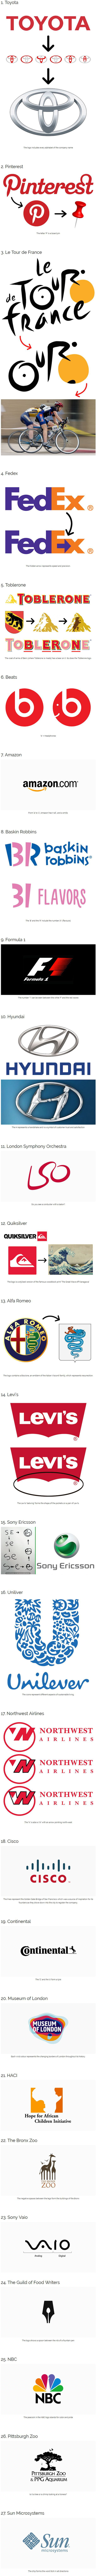 Some famous logos explained